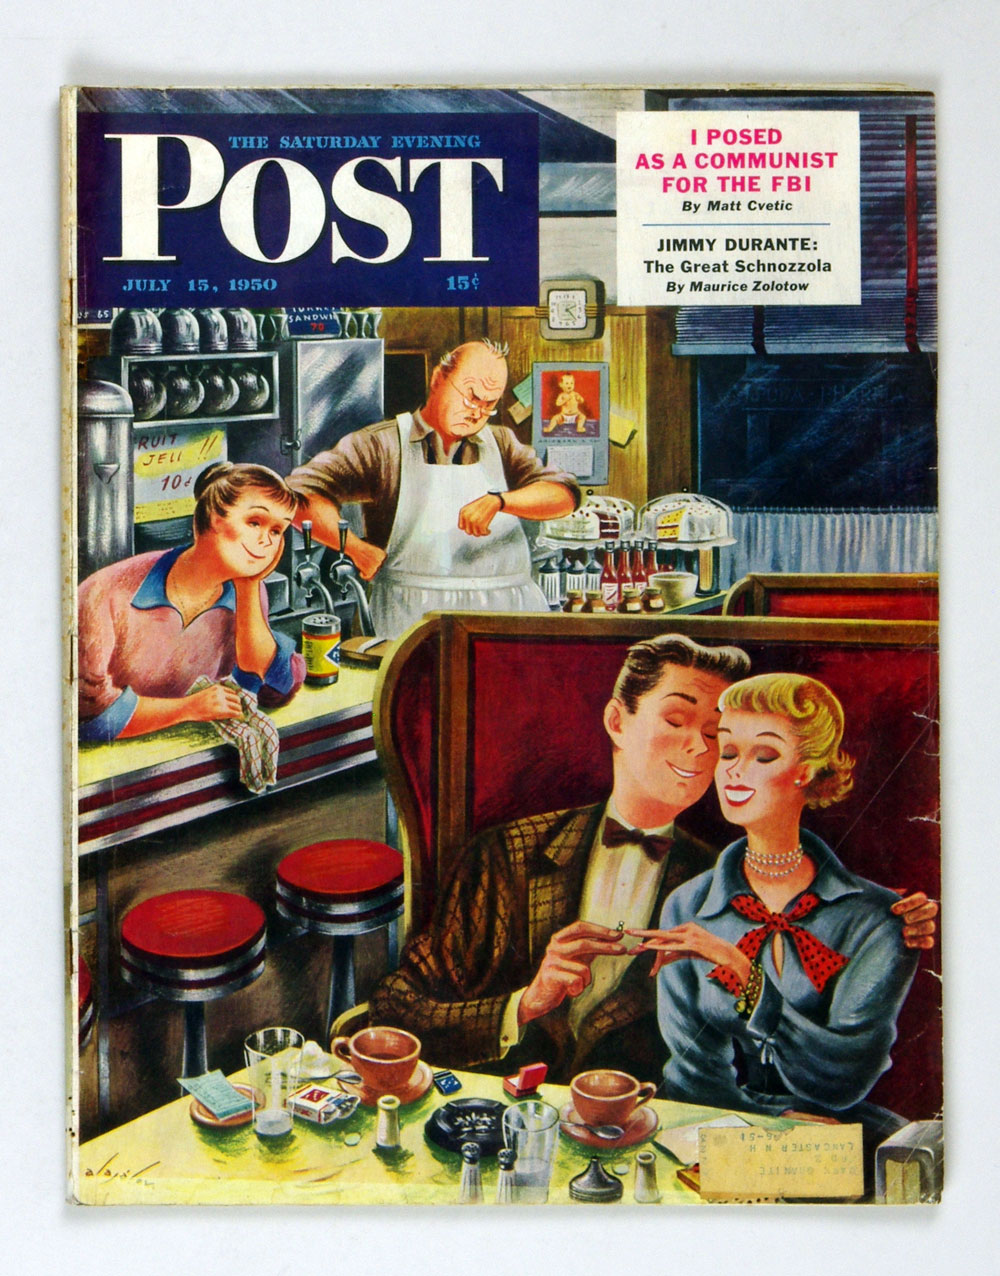 The Saturday Evening Post 1950 Jul 15 Romance in a Diner by Alajalov